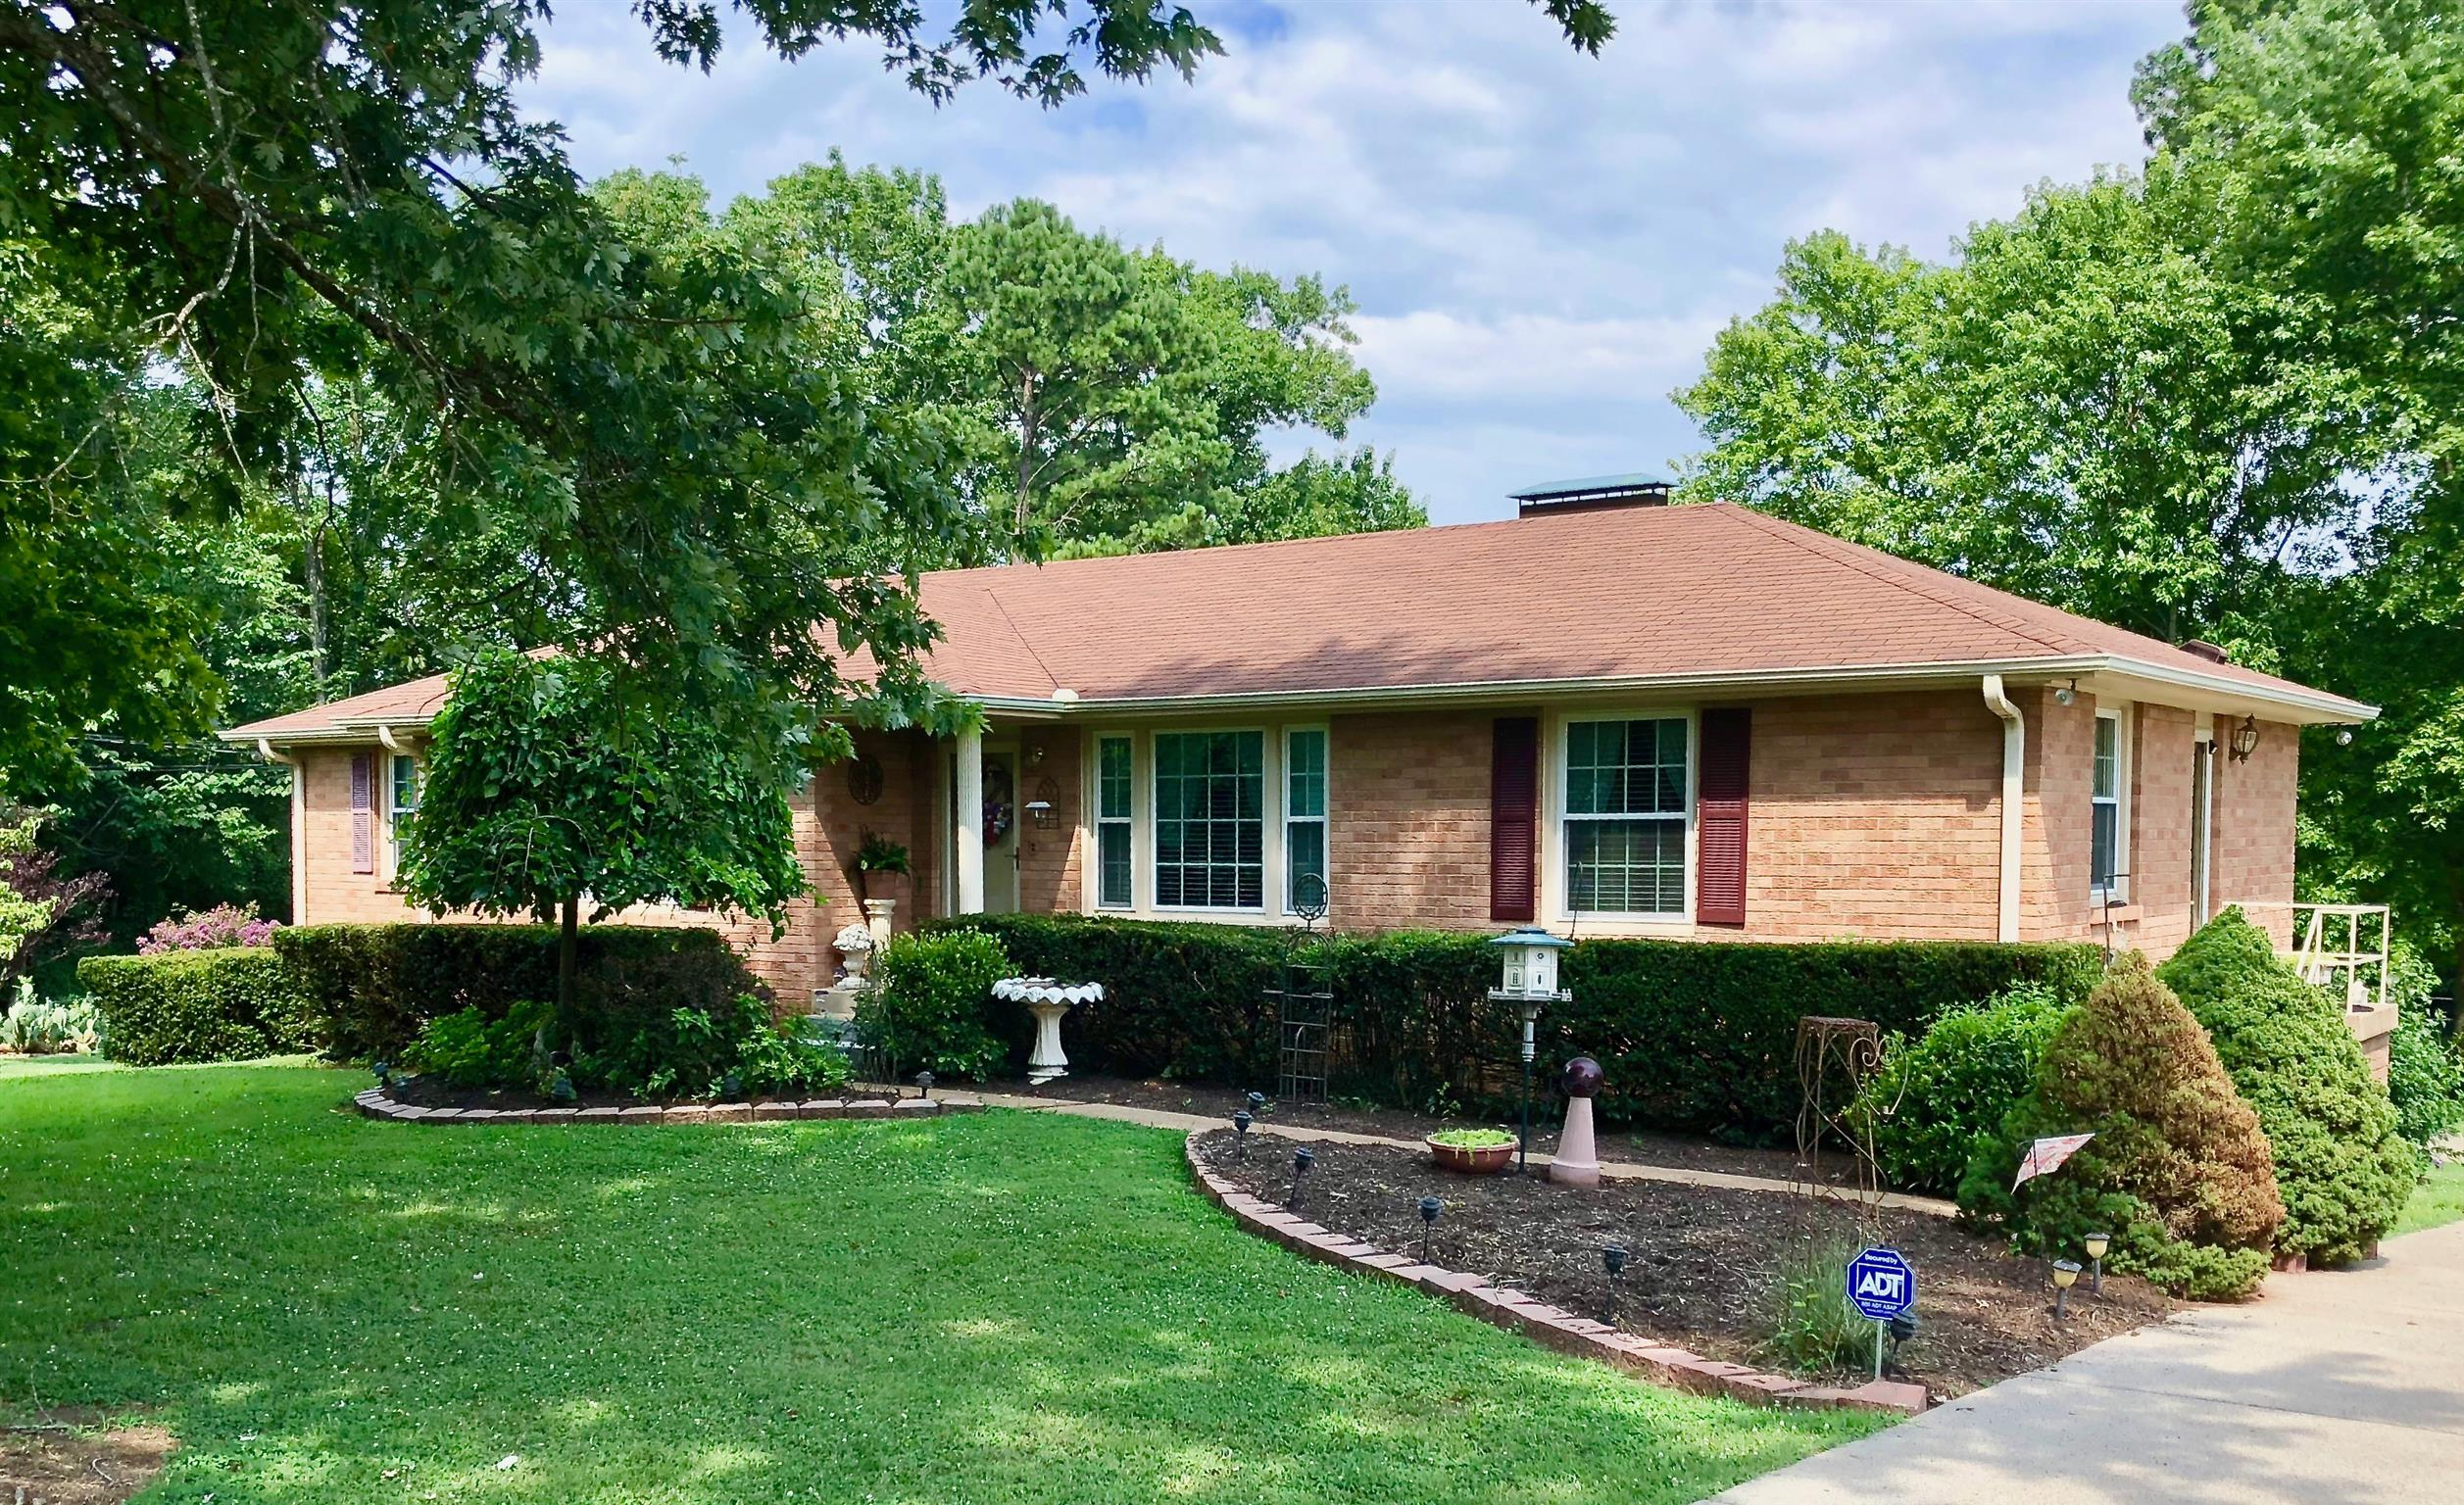 MOTIVATED SELLER - VERY SOLID HOME AND VERY WELL TAKEN CARE OF, REPLACED ALL WINDOWS 2 YEARS AGO, HARDWOOD FLOORS UNDER CARPET, SS Appl., BEDROOMS ON ONE LEVEL, 2 FP, WITH PLENTY OF STORAGE, 22X26 BASEMENT W/FULL BATH W/FP, ACCESS TO GARAGE AND OUTSIDE GAZEBO.  HUGE 1 ACRE LOT.